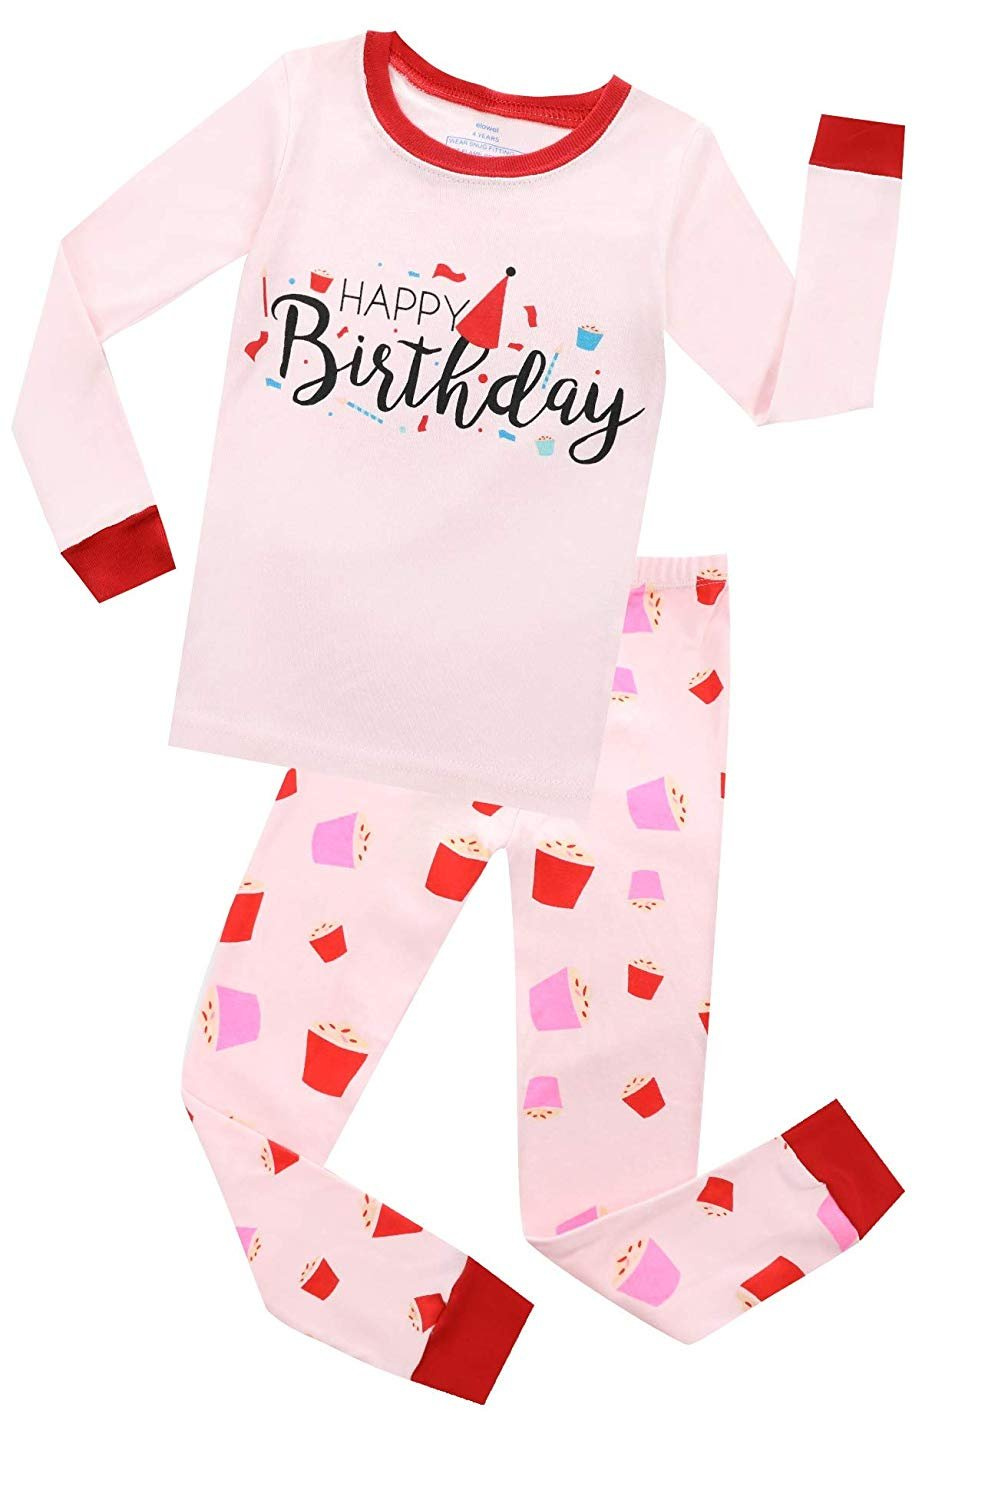 Baby Birthday Girl Pjs Pyjamas STRIPED Ages 1,2,3,4,5 Any Name Cute Soft Pink